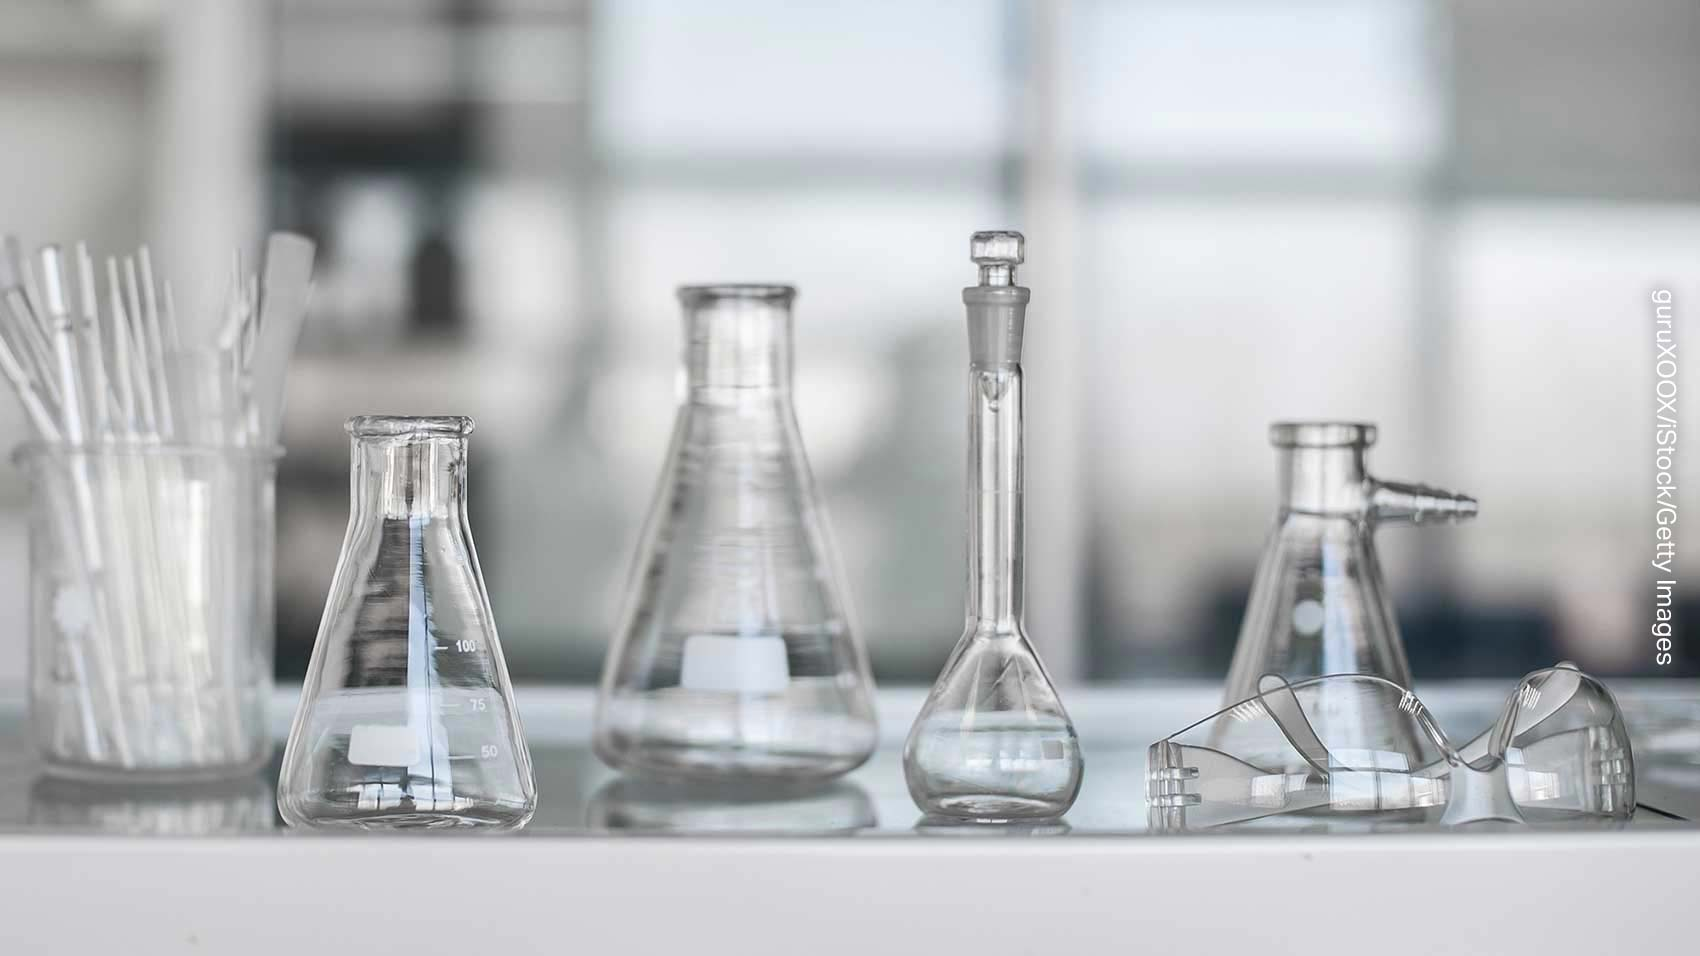 Transparent beakers for chemicals in a lab